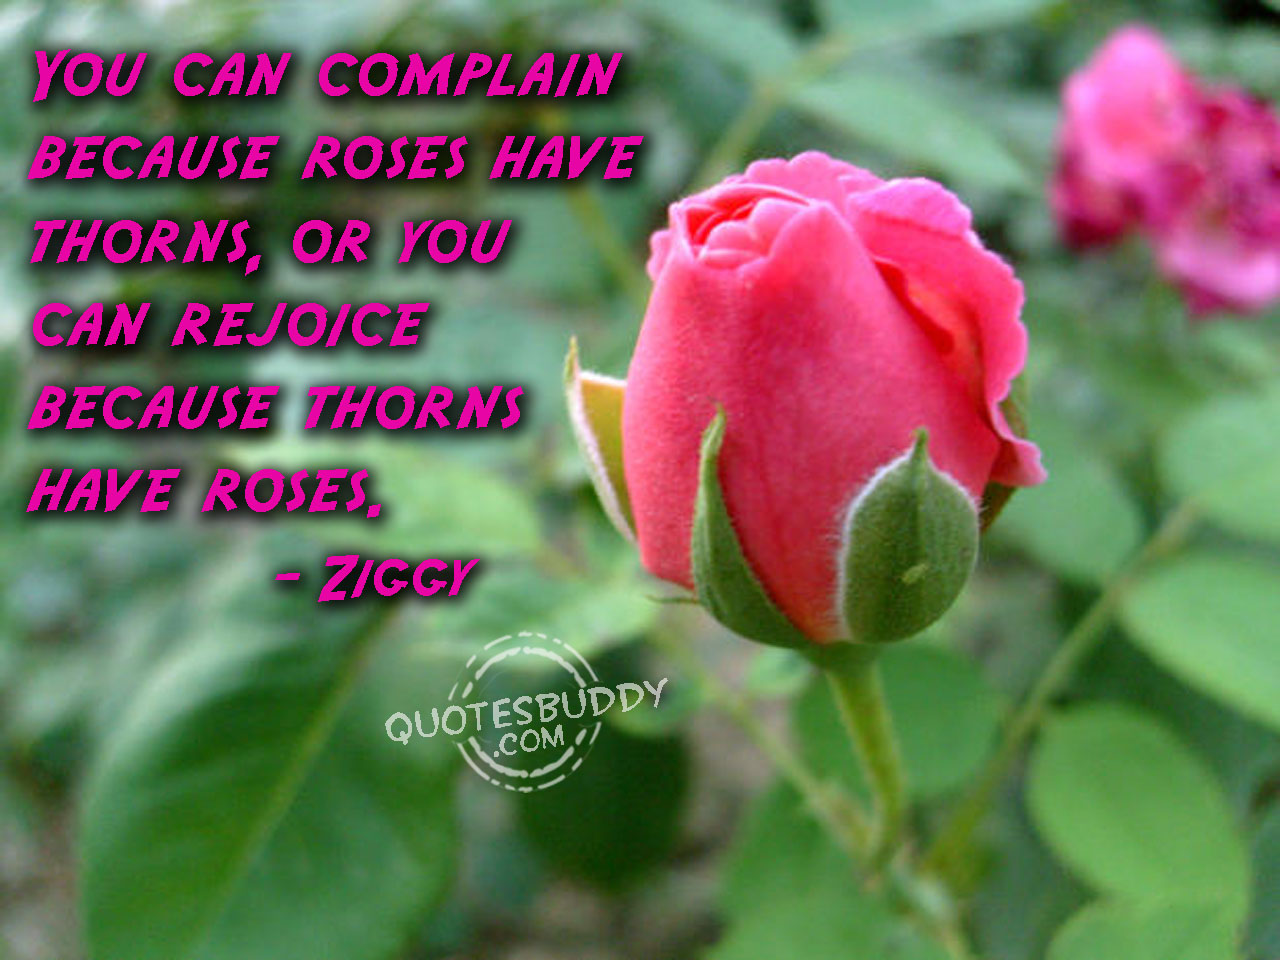 Famous Quotes About 'Roses'